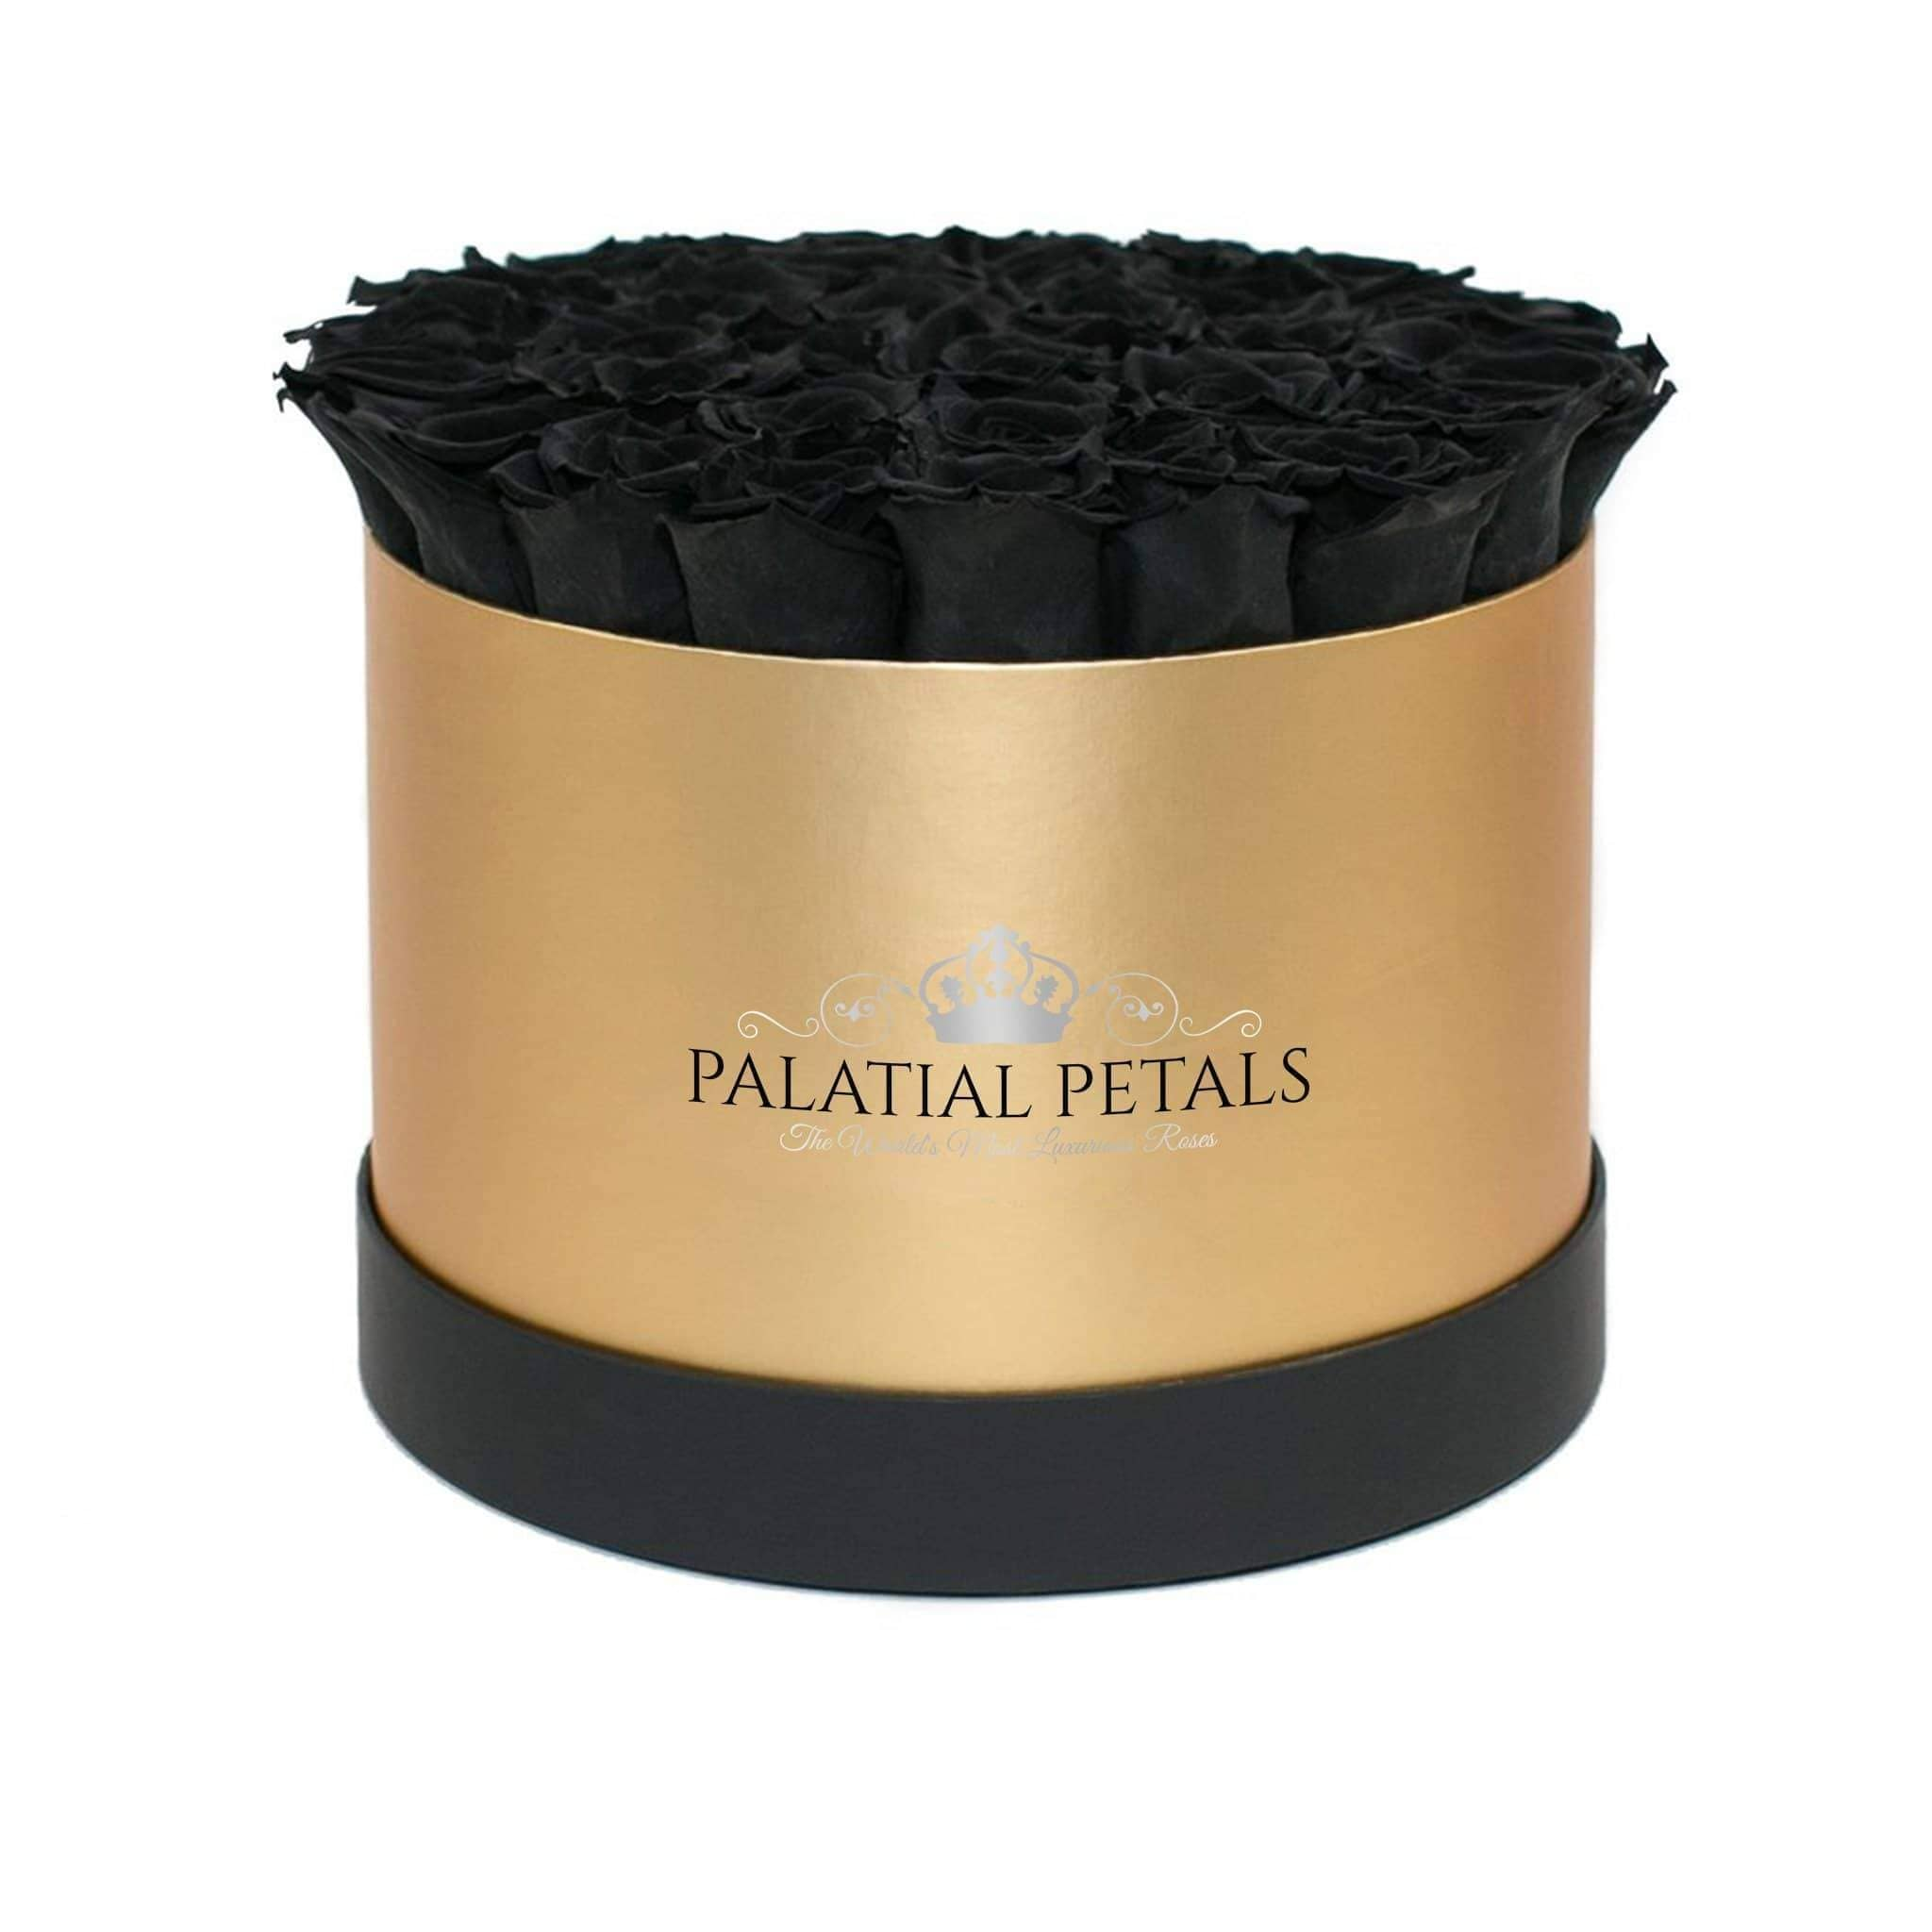 Black Roses That Last A Year - Grande Rose Box - Palatial Petals